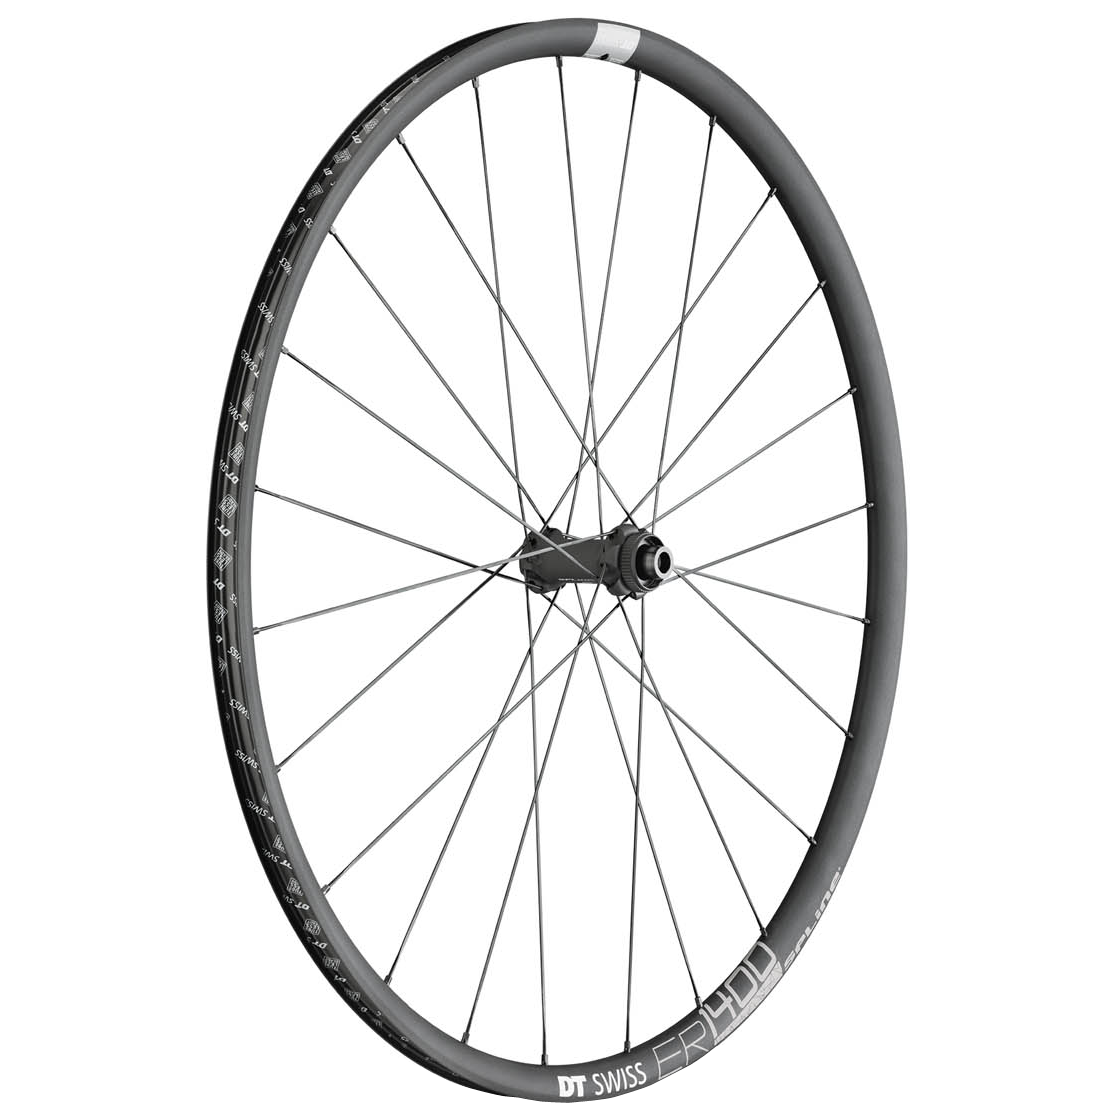 ER 1400 Spline Disc, 700c, Front Wheel, 24h